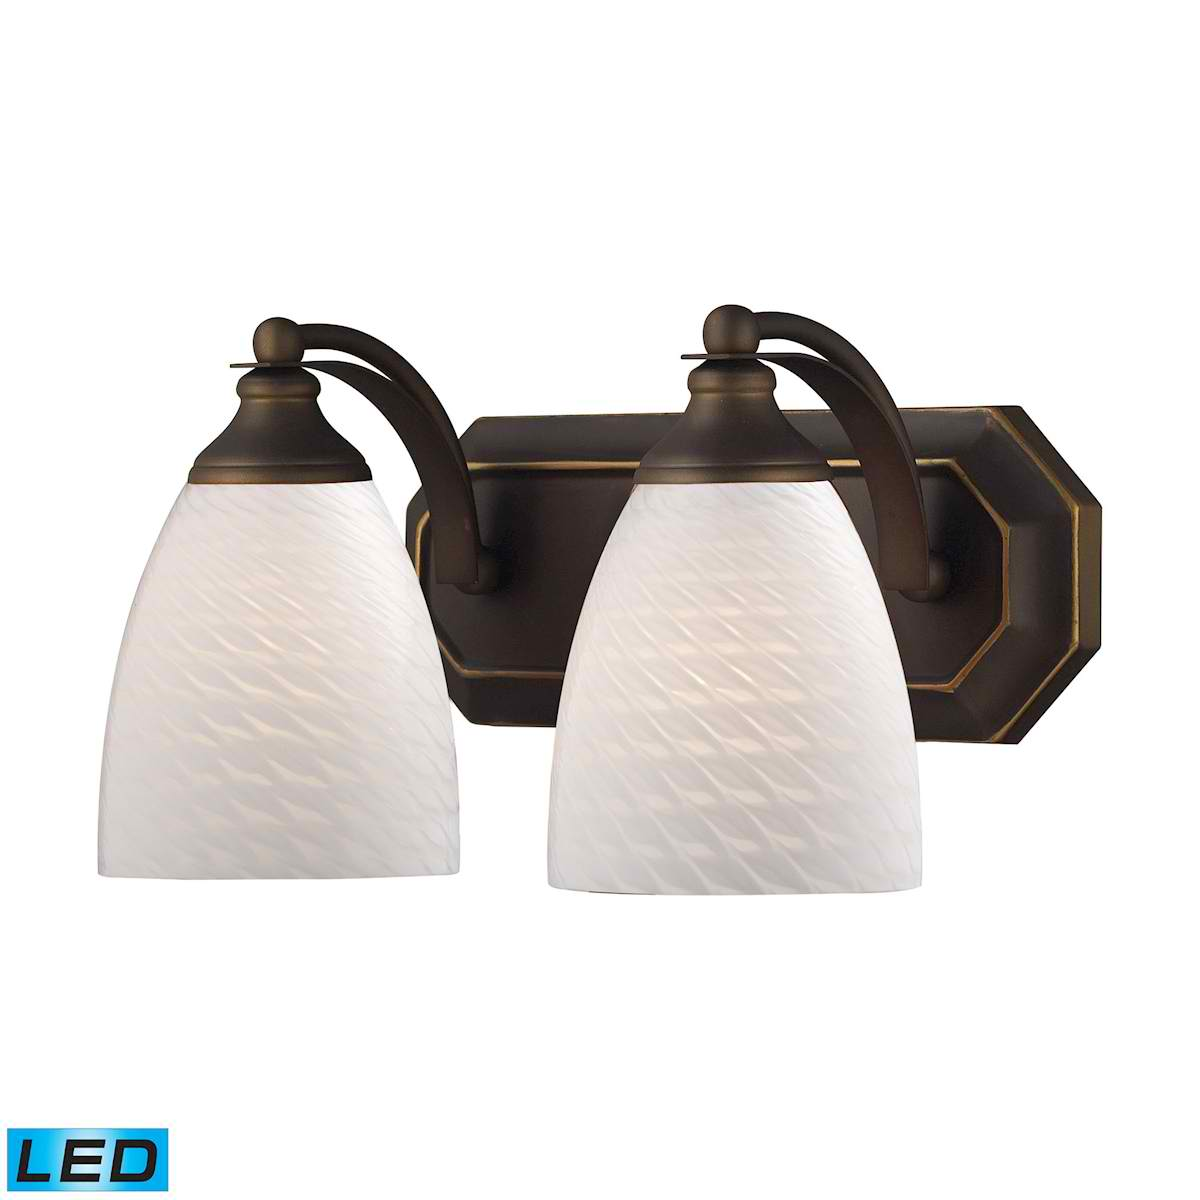 2 Light Vanity in Aged Bronze and White Swirl Glass - LED, 800 Lumens (1600 Lumens Total) with Full Scale